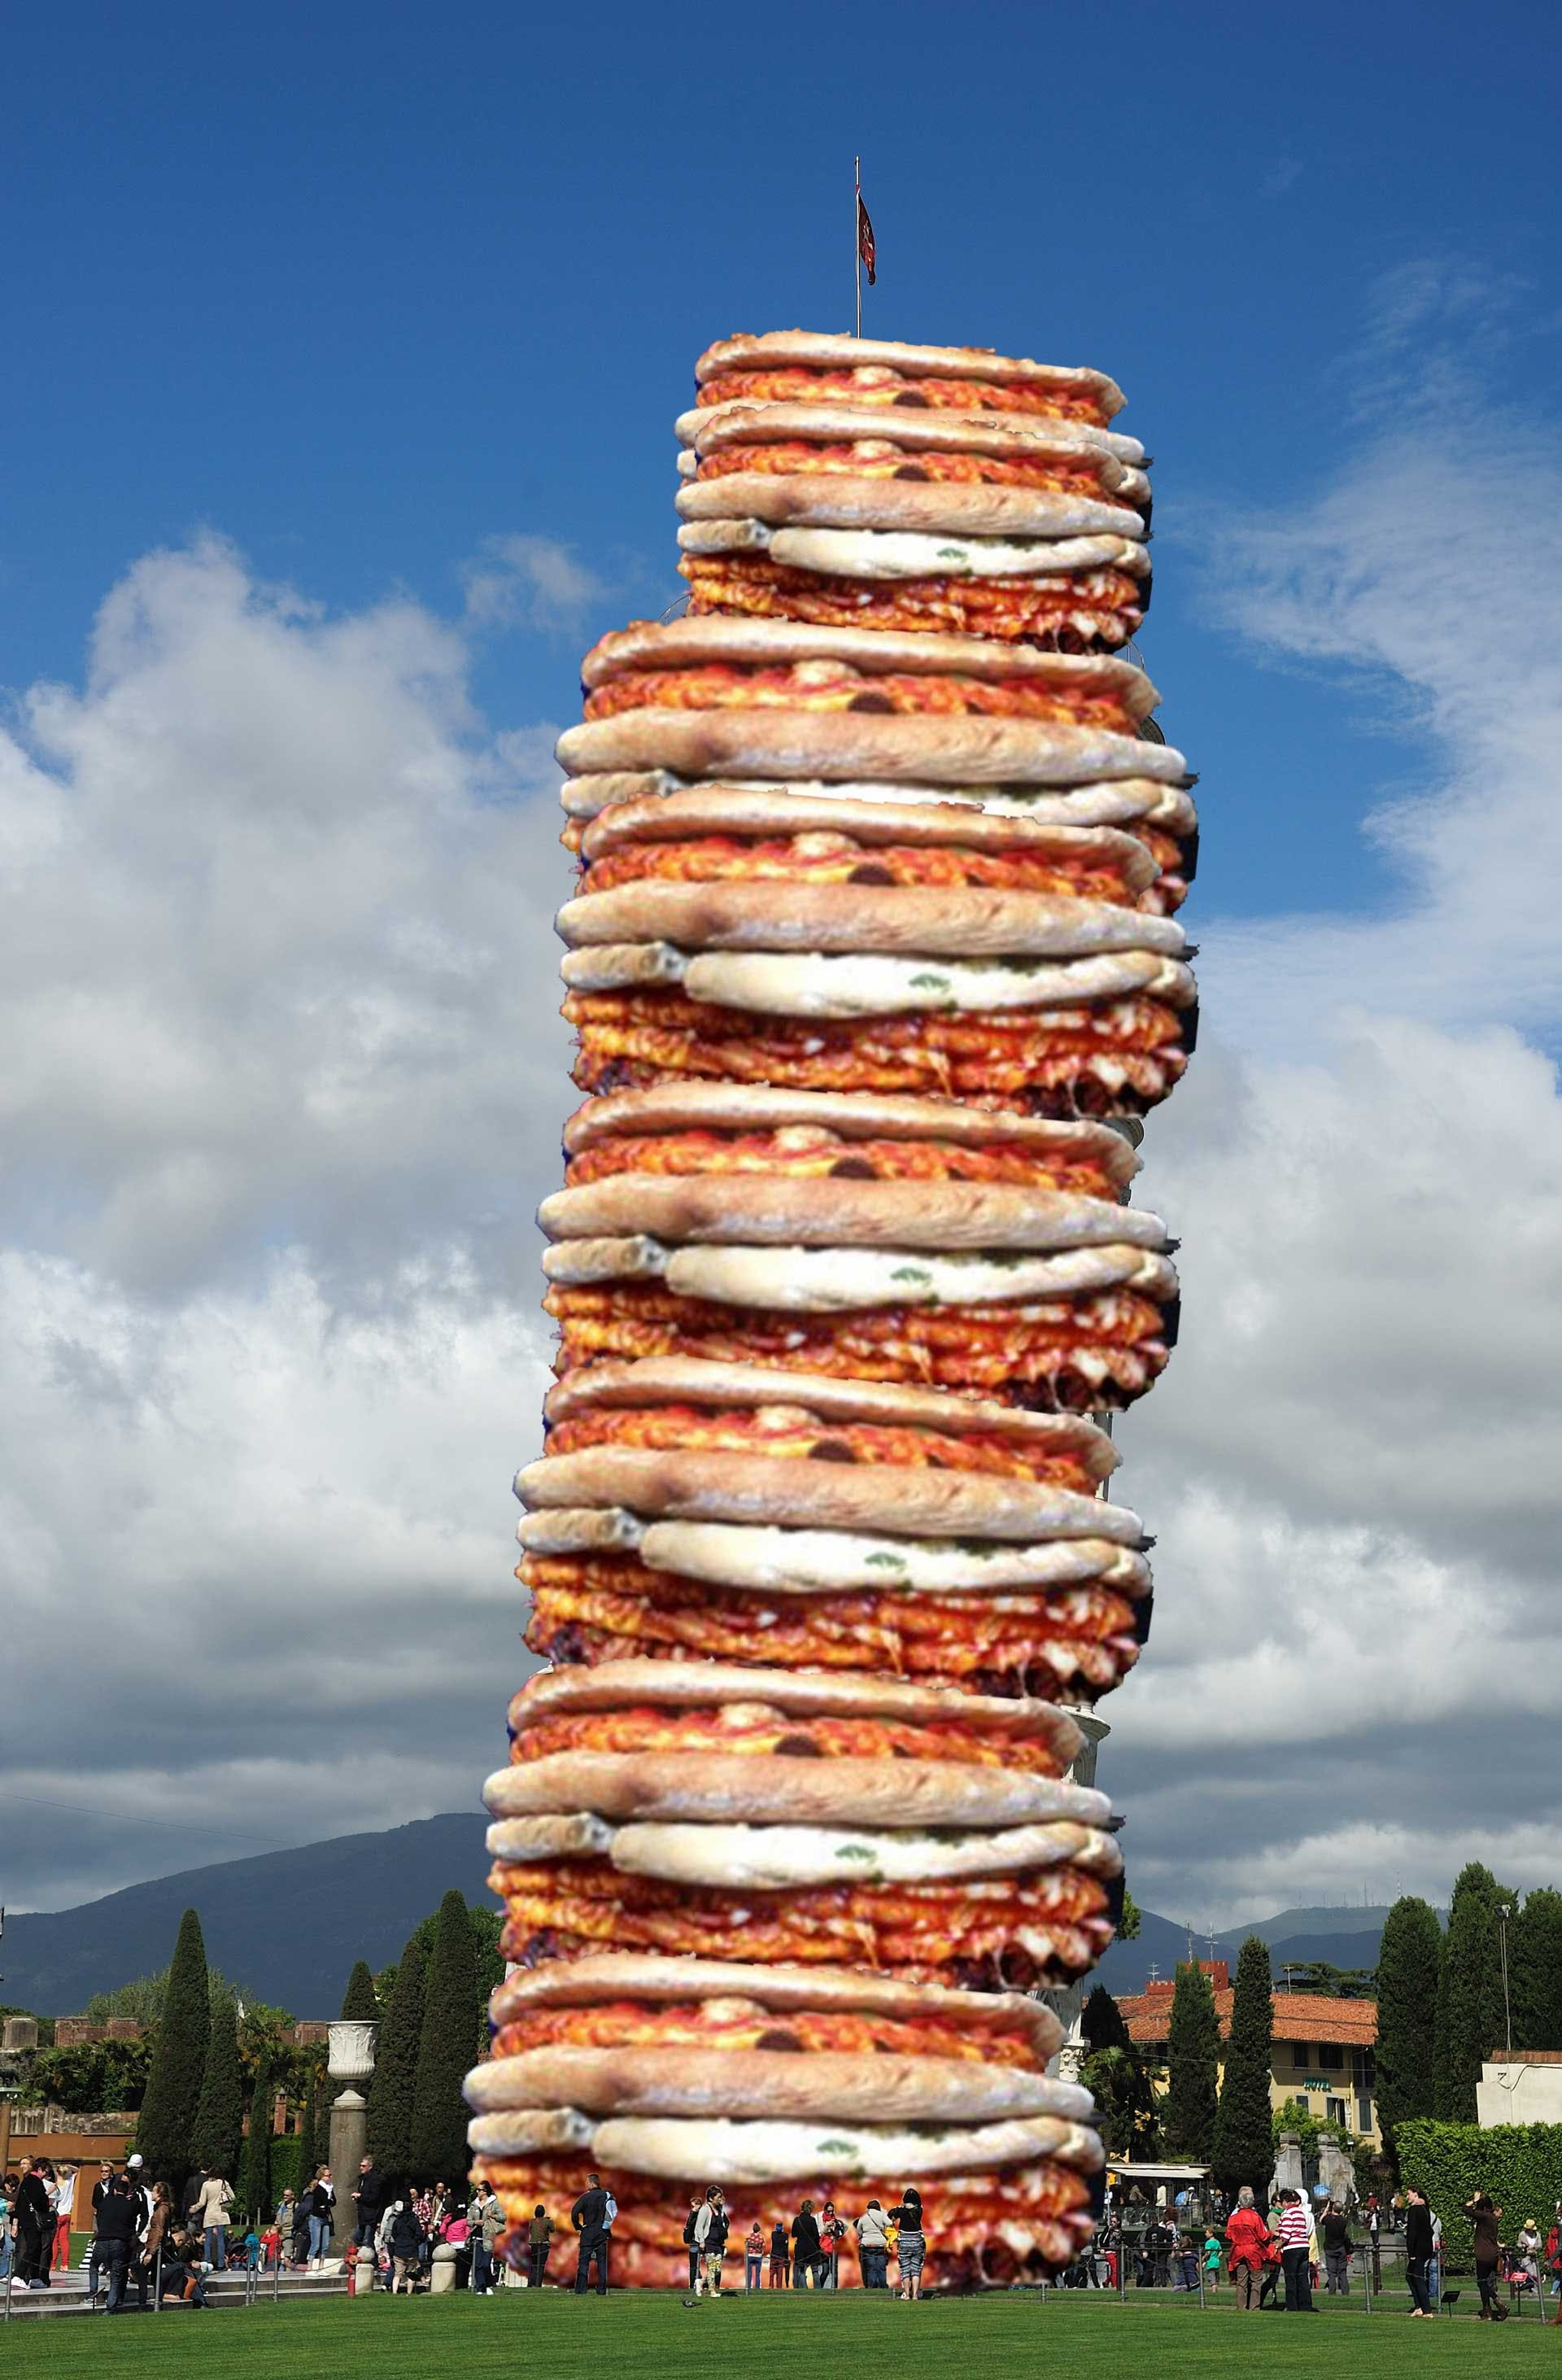 The Leaning Tower of Pizza